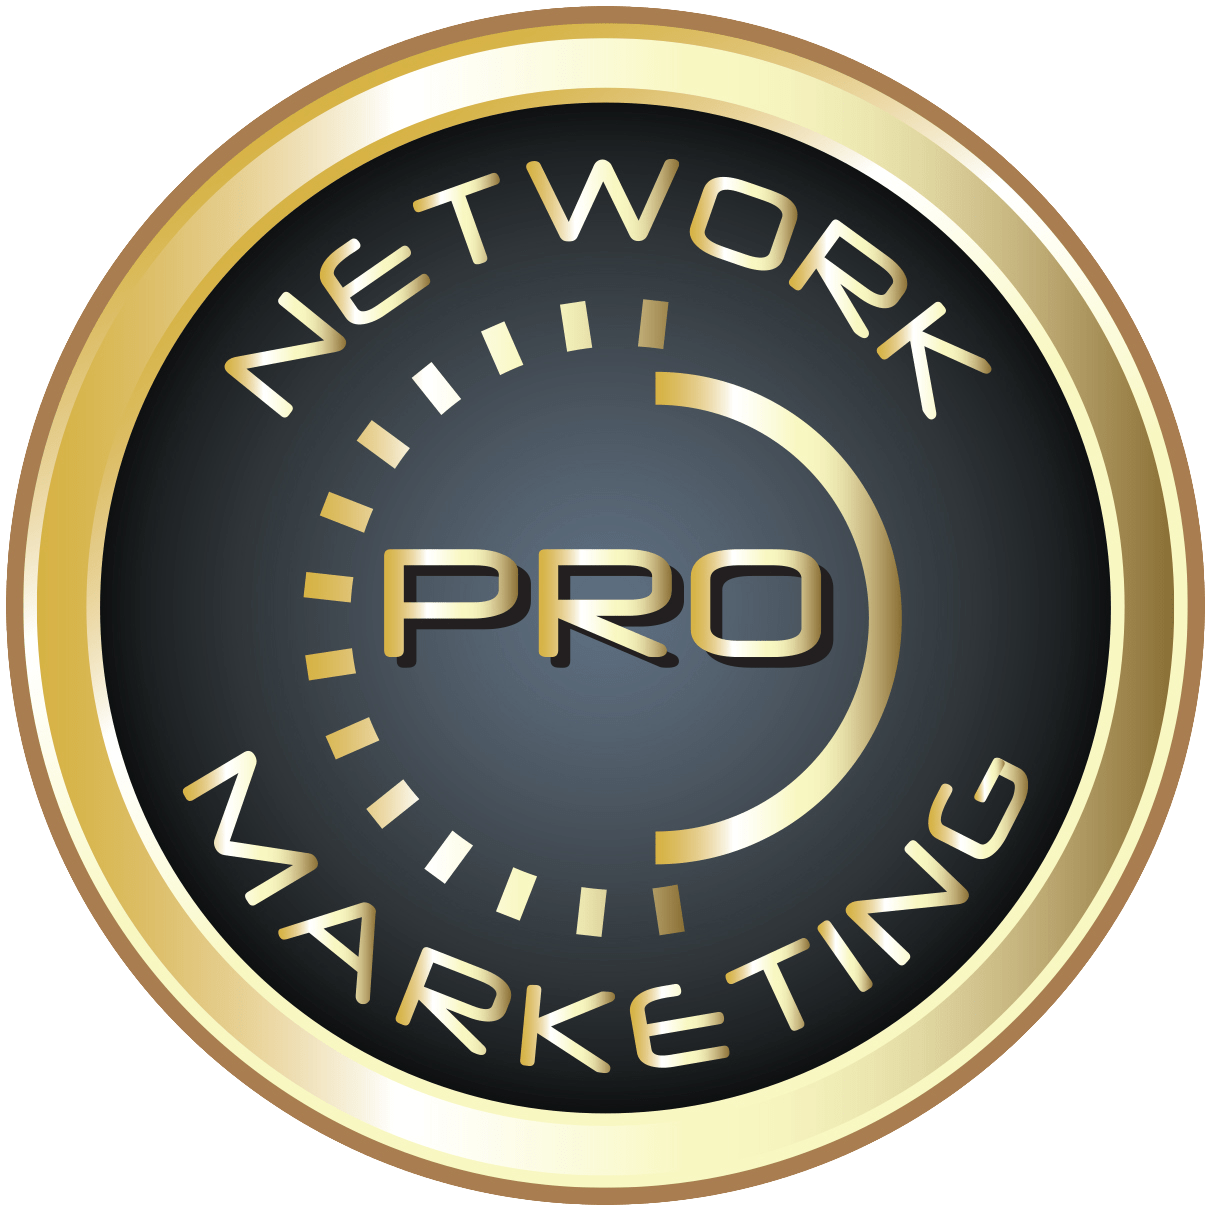 NMP network marketing pro speaker Eric worre